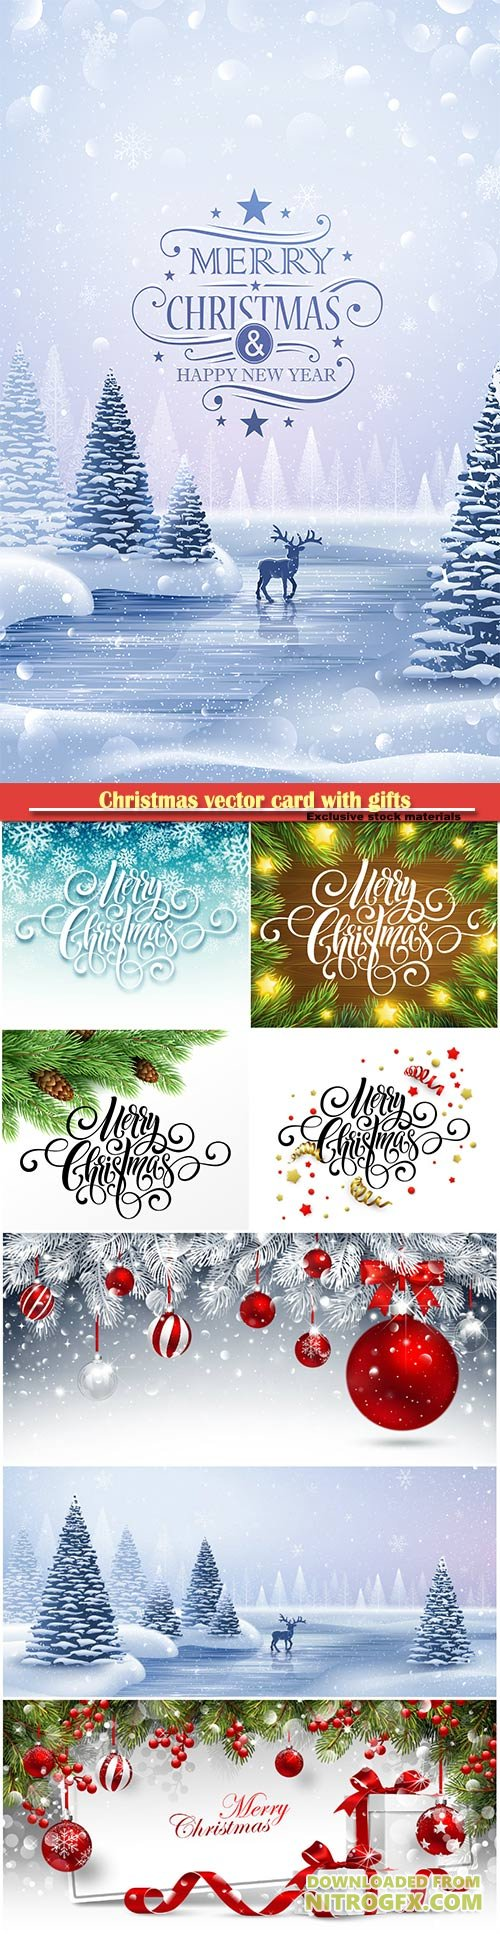 Christmas vector card with gifts and fir branches on sparkling background